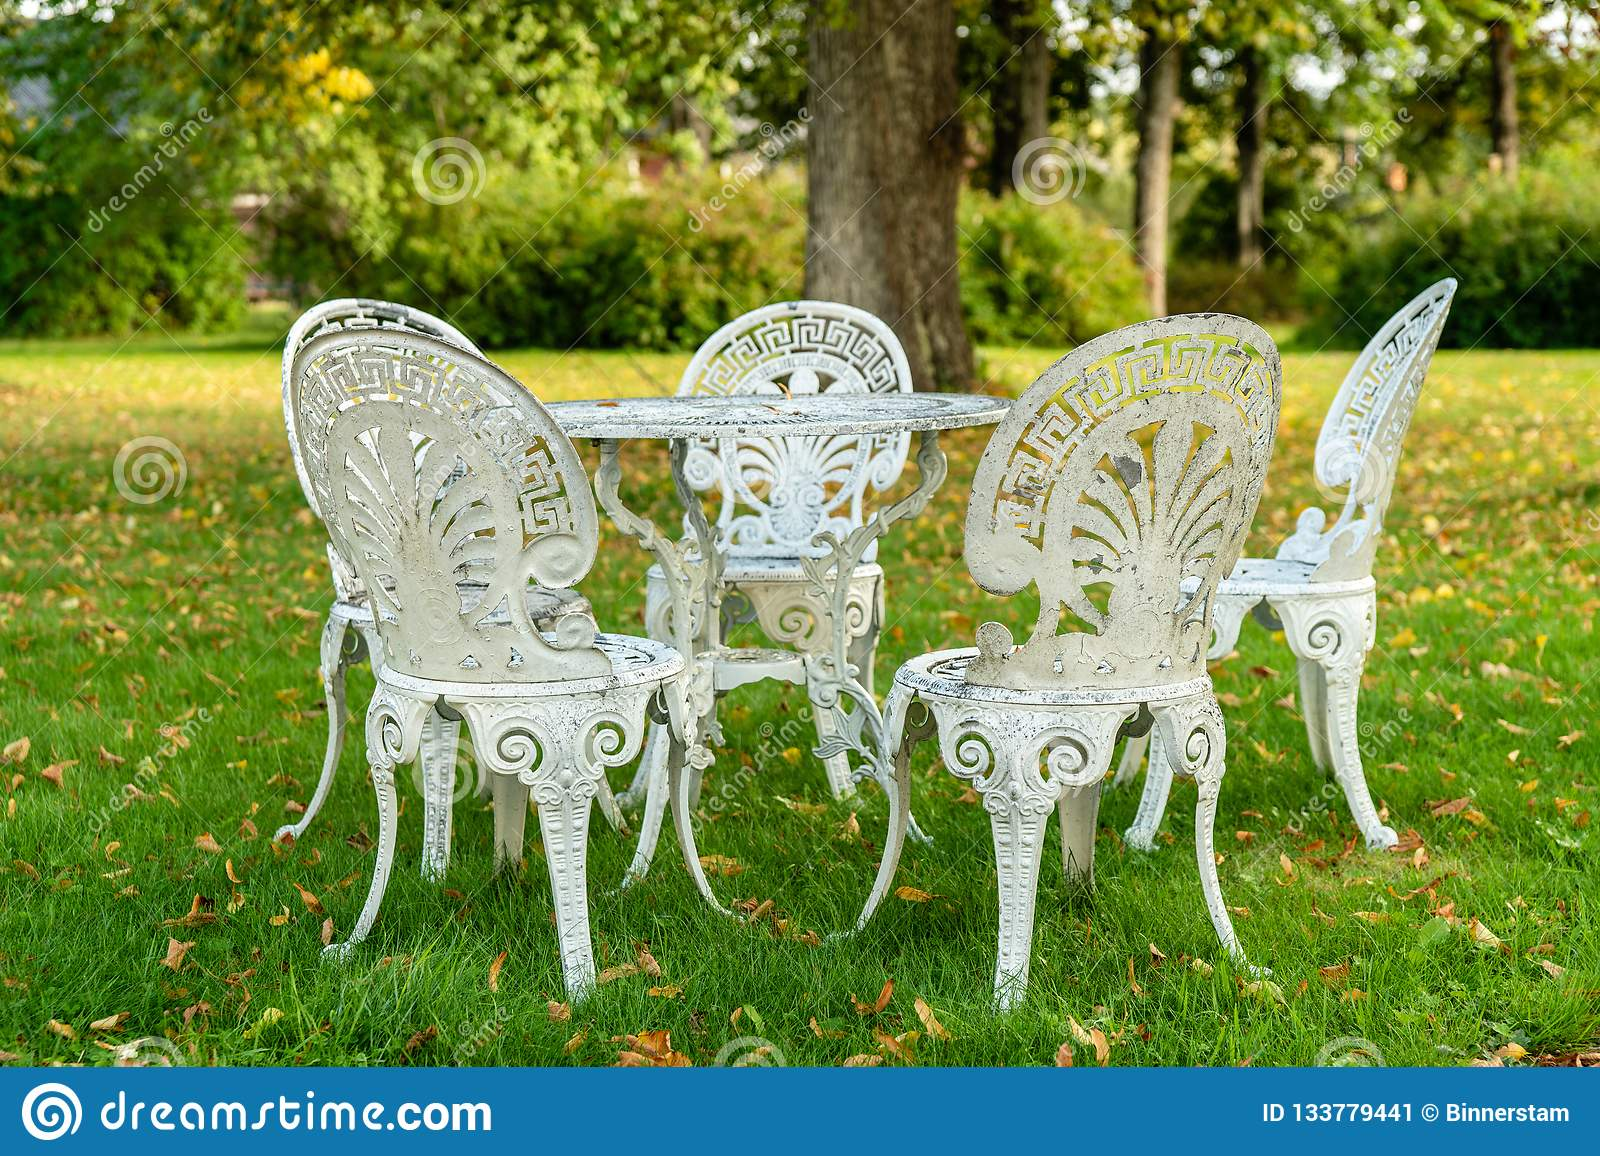 Old White Outdoor Furniture Made Of Metal, Chairs And Table. Standing In  Sunshine In An Autumn Colored Garden With Green Grass And Yellow Leafs